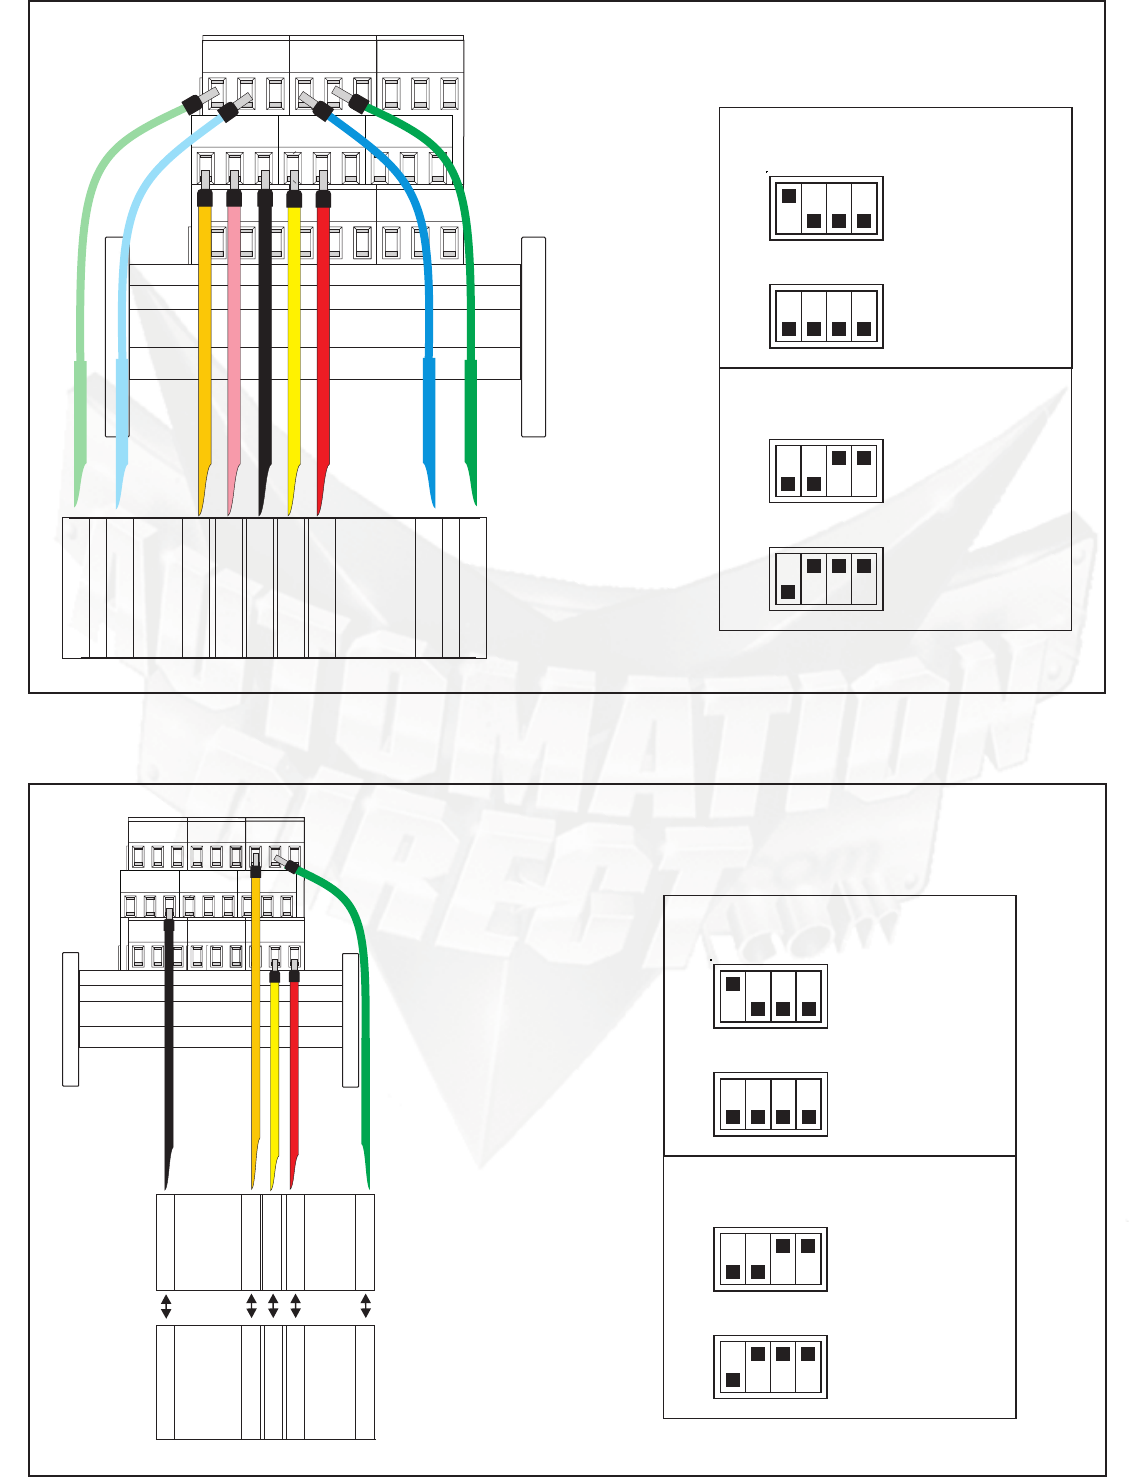 Dn25tb Manual Dn 25tb V12 Rs422 Wiring Diagram Connecting